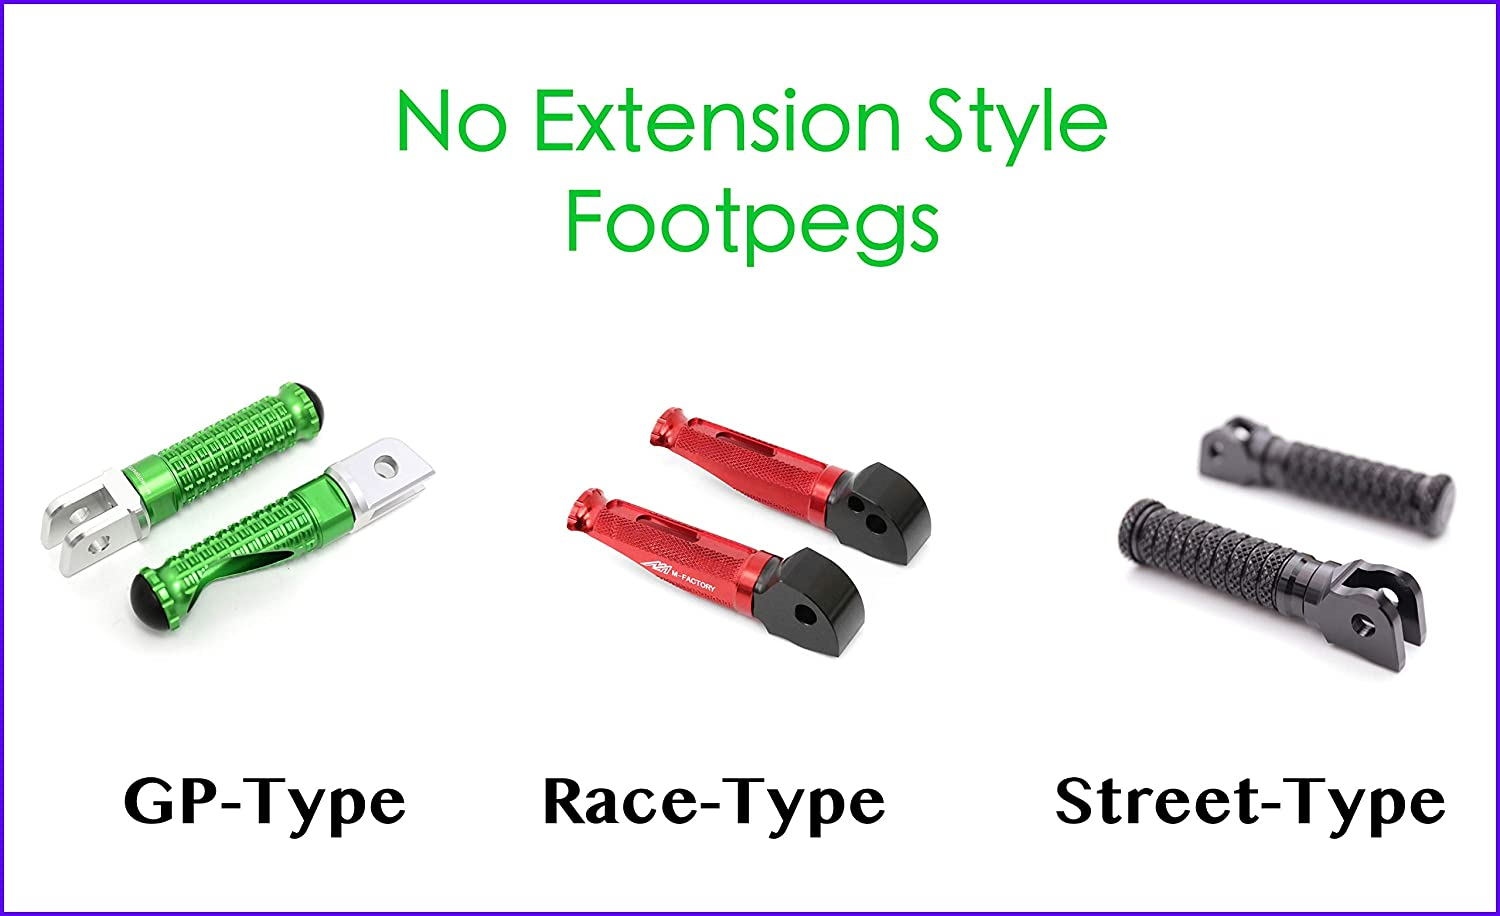 Model FP-FRONT-F114-40MM-BK-POLE-BK Autobahn88 Motorcycle Footpeg Front - STREET-Type with 40mm-Extension Black